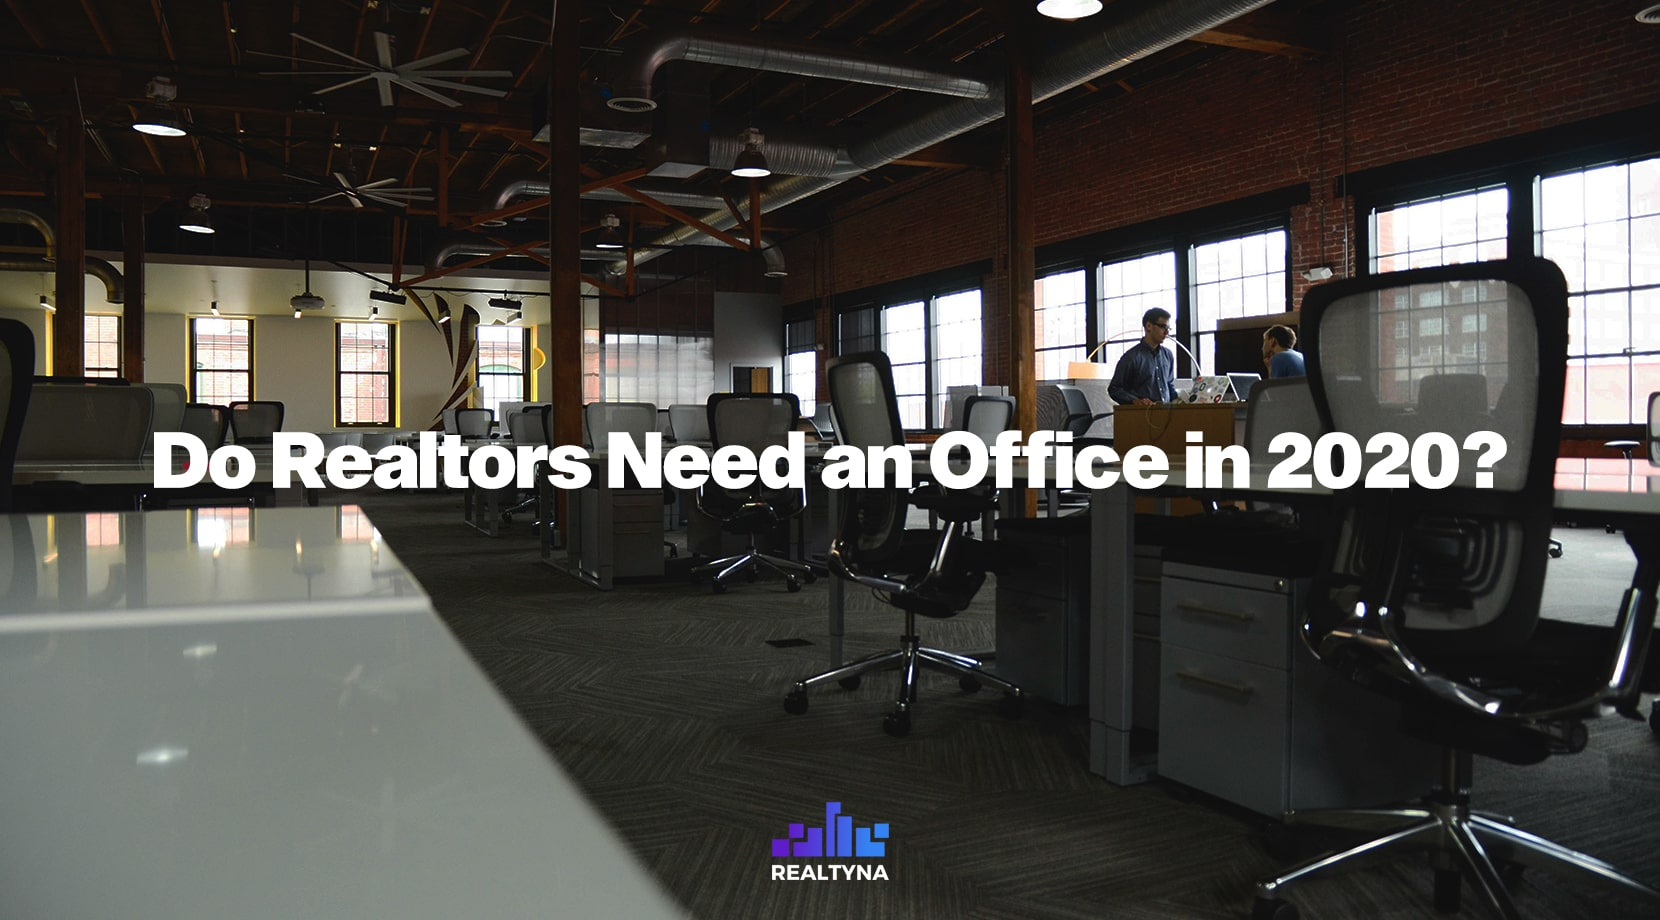 Do Realtors Need an Office in 2020?